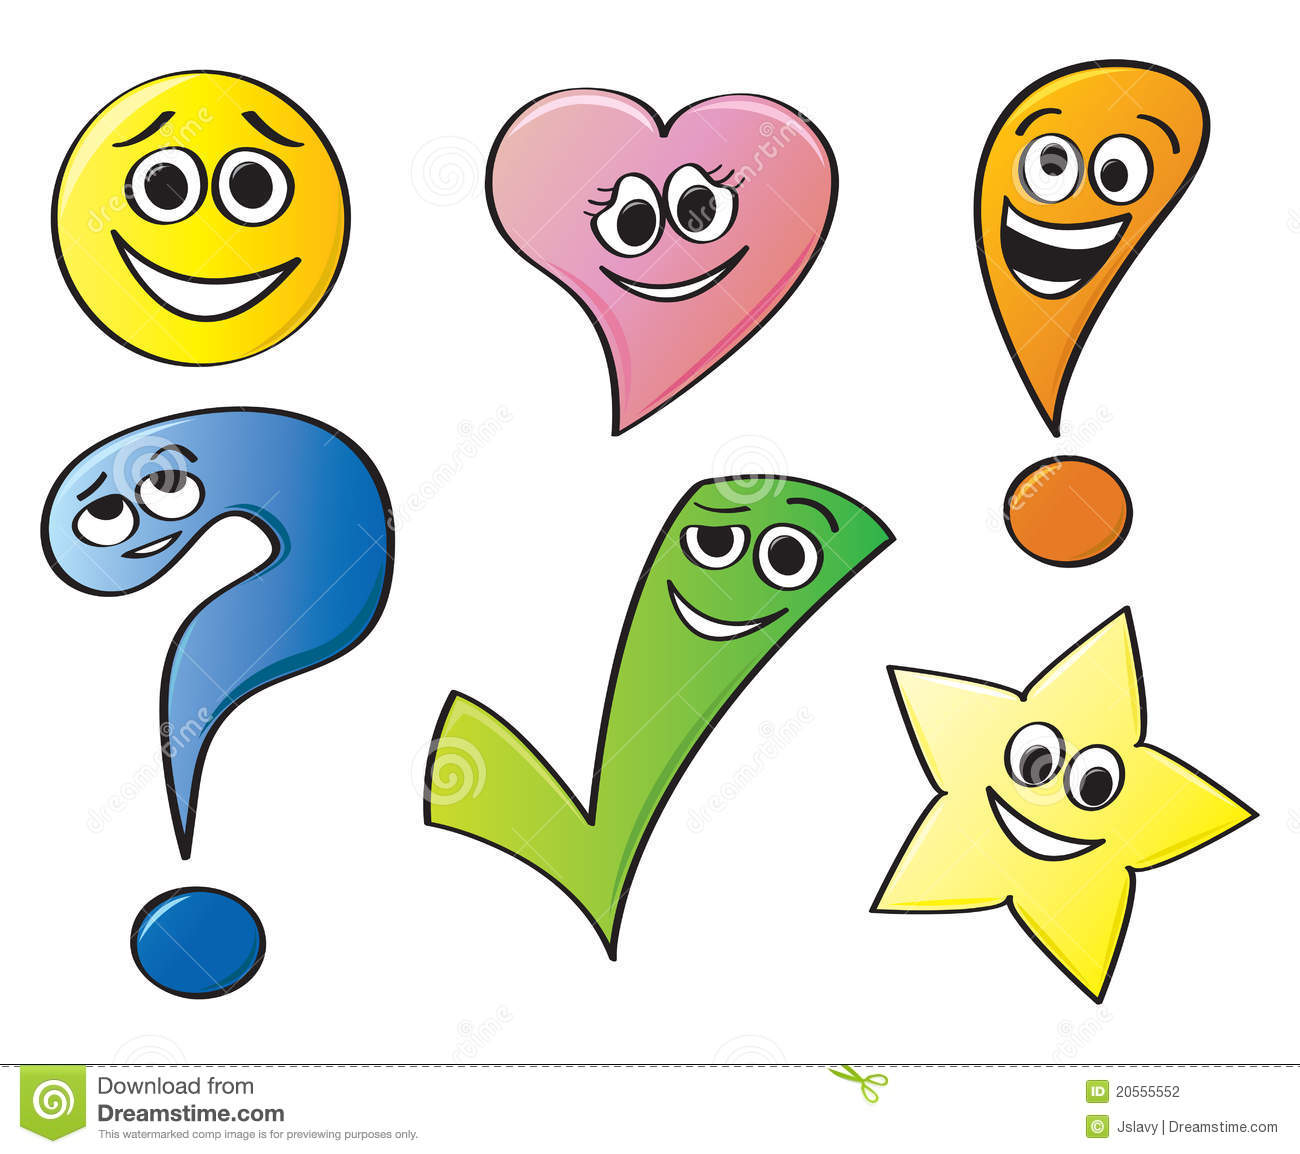 Expressive Cartoon Shapes Stock Vector. Image Of Animated